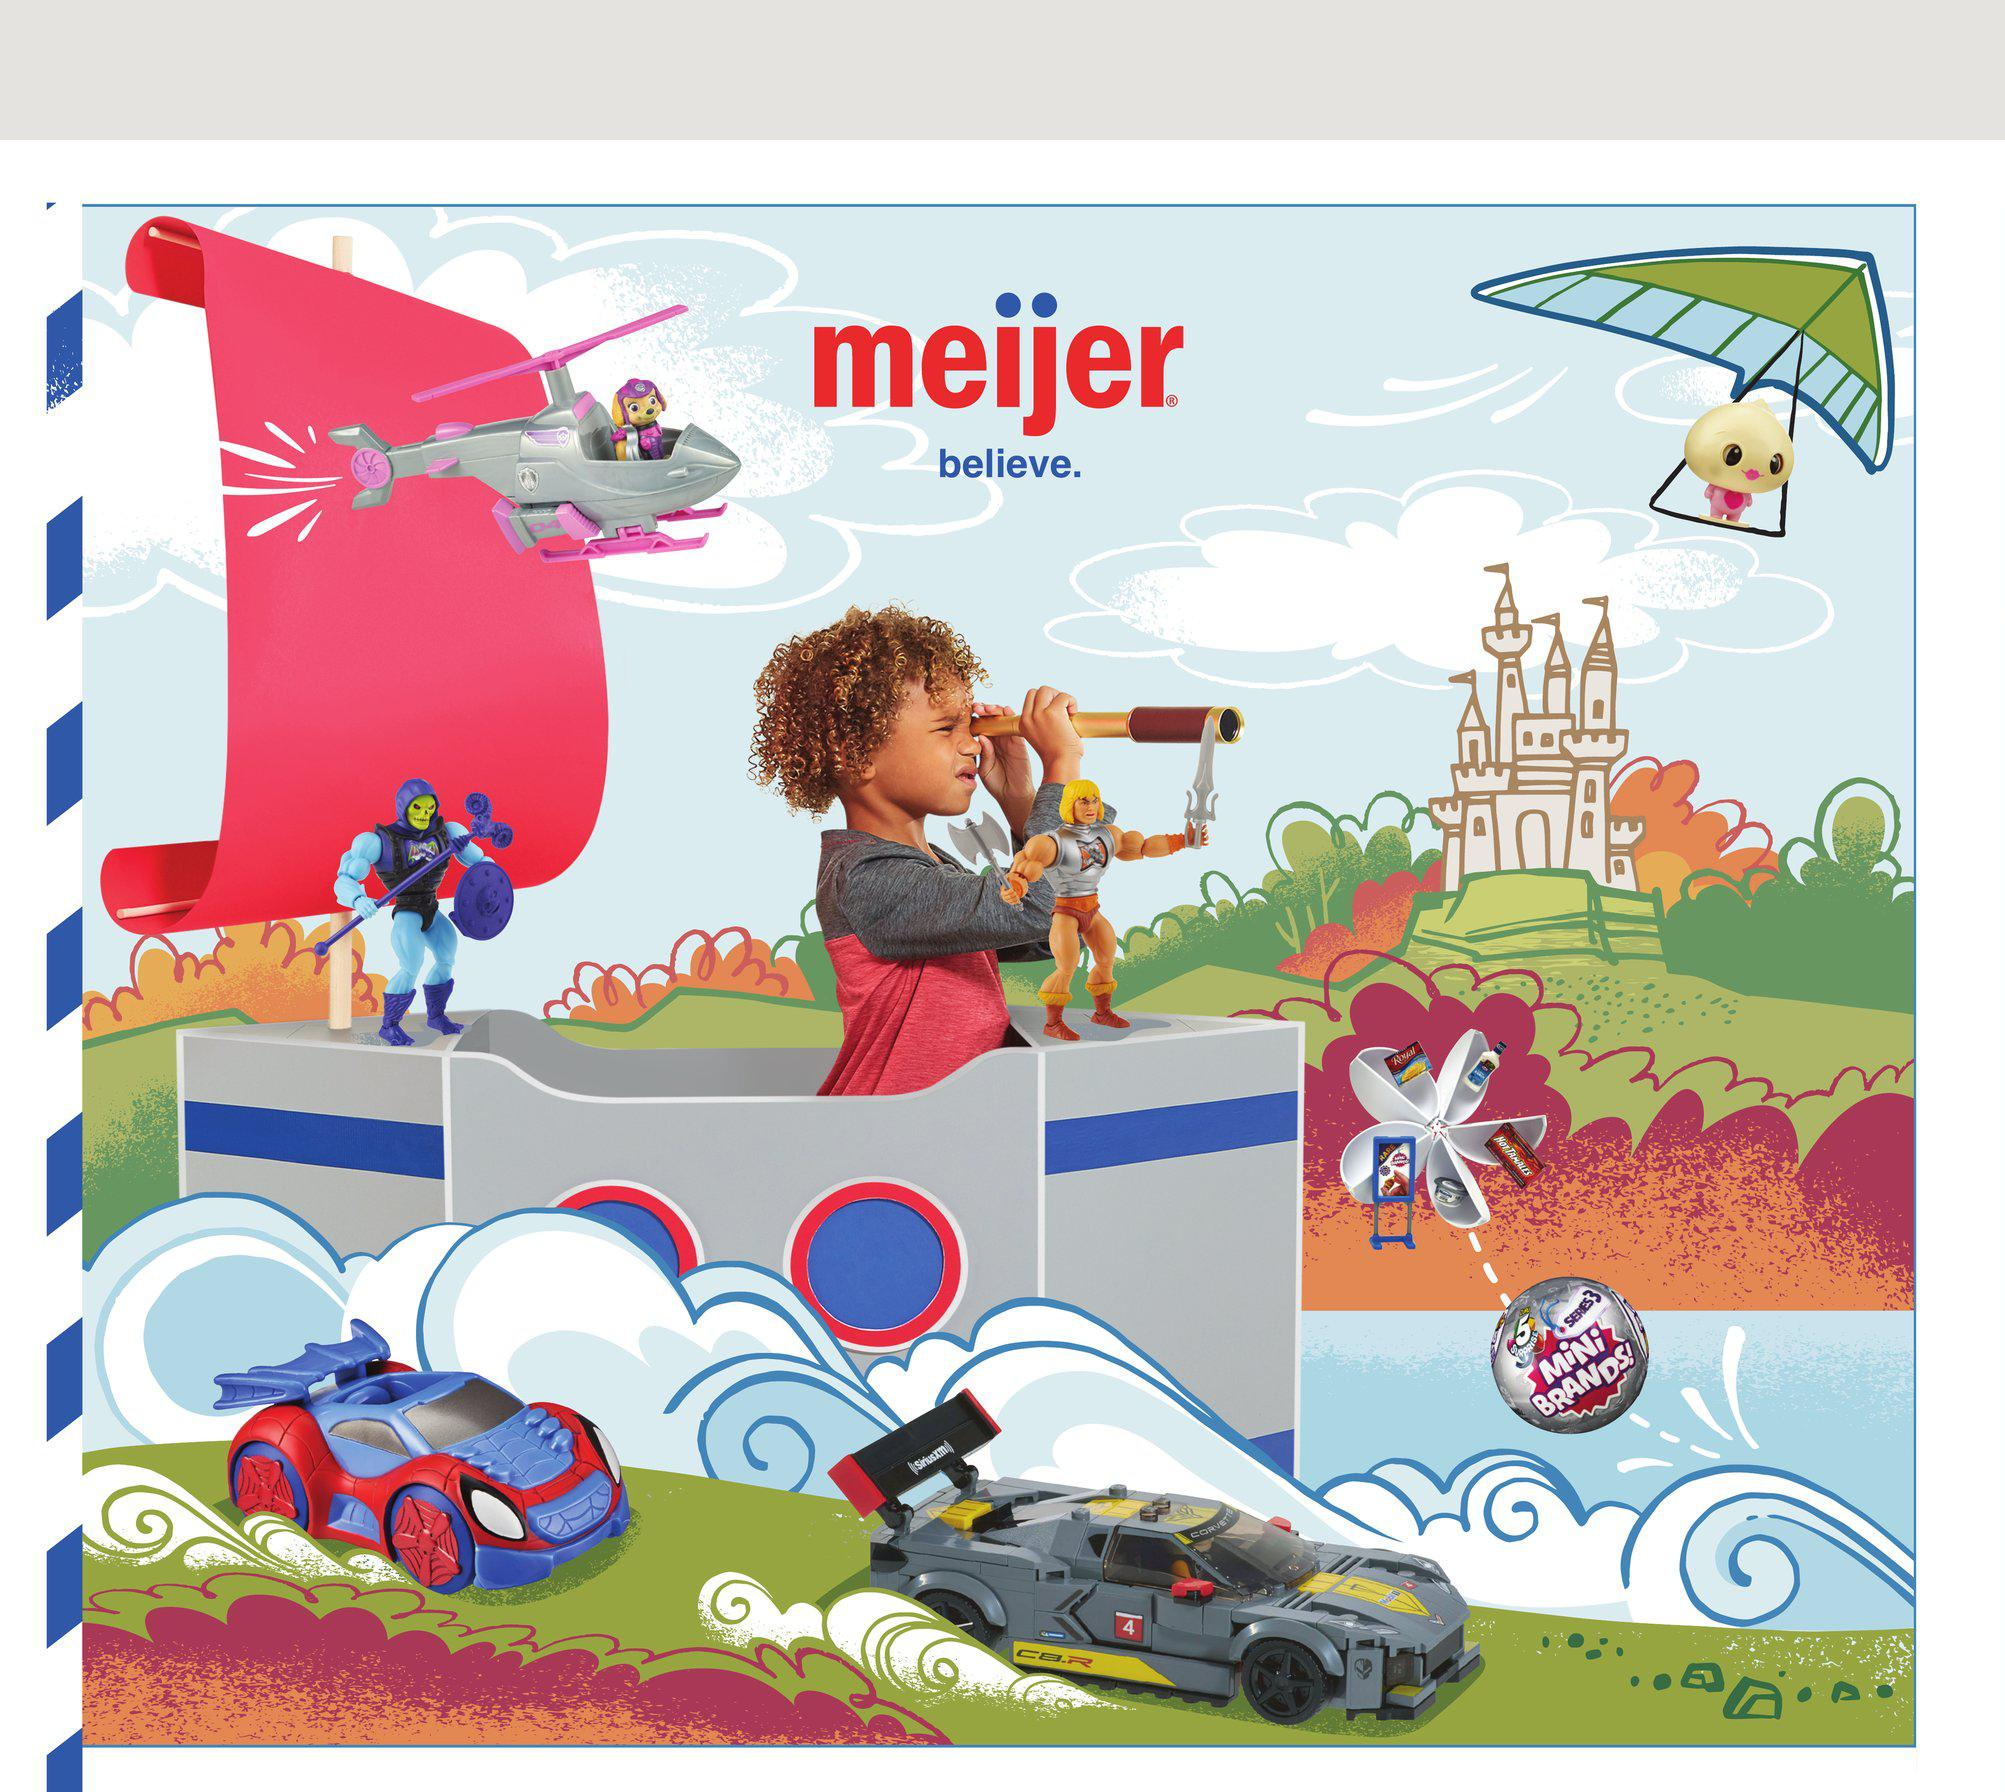 03.10.2021 Meijer ad 1. page